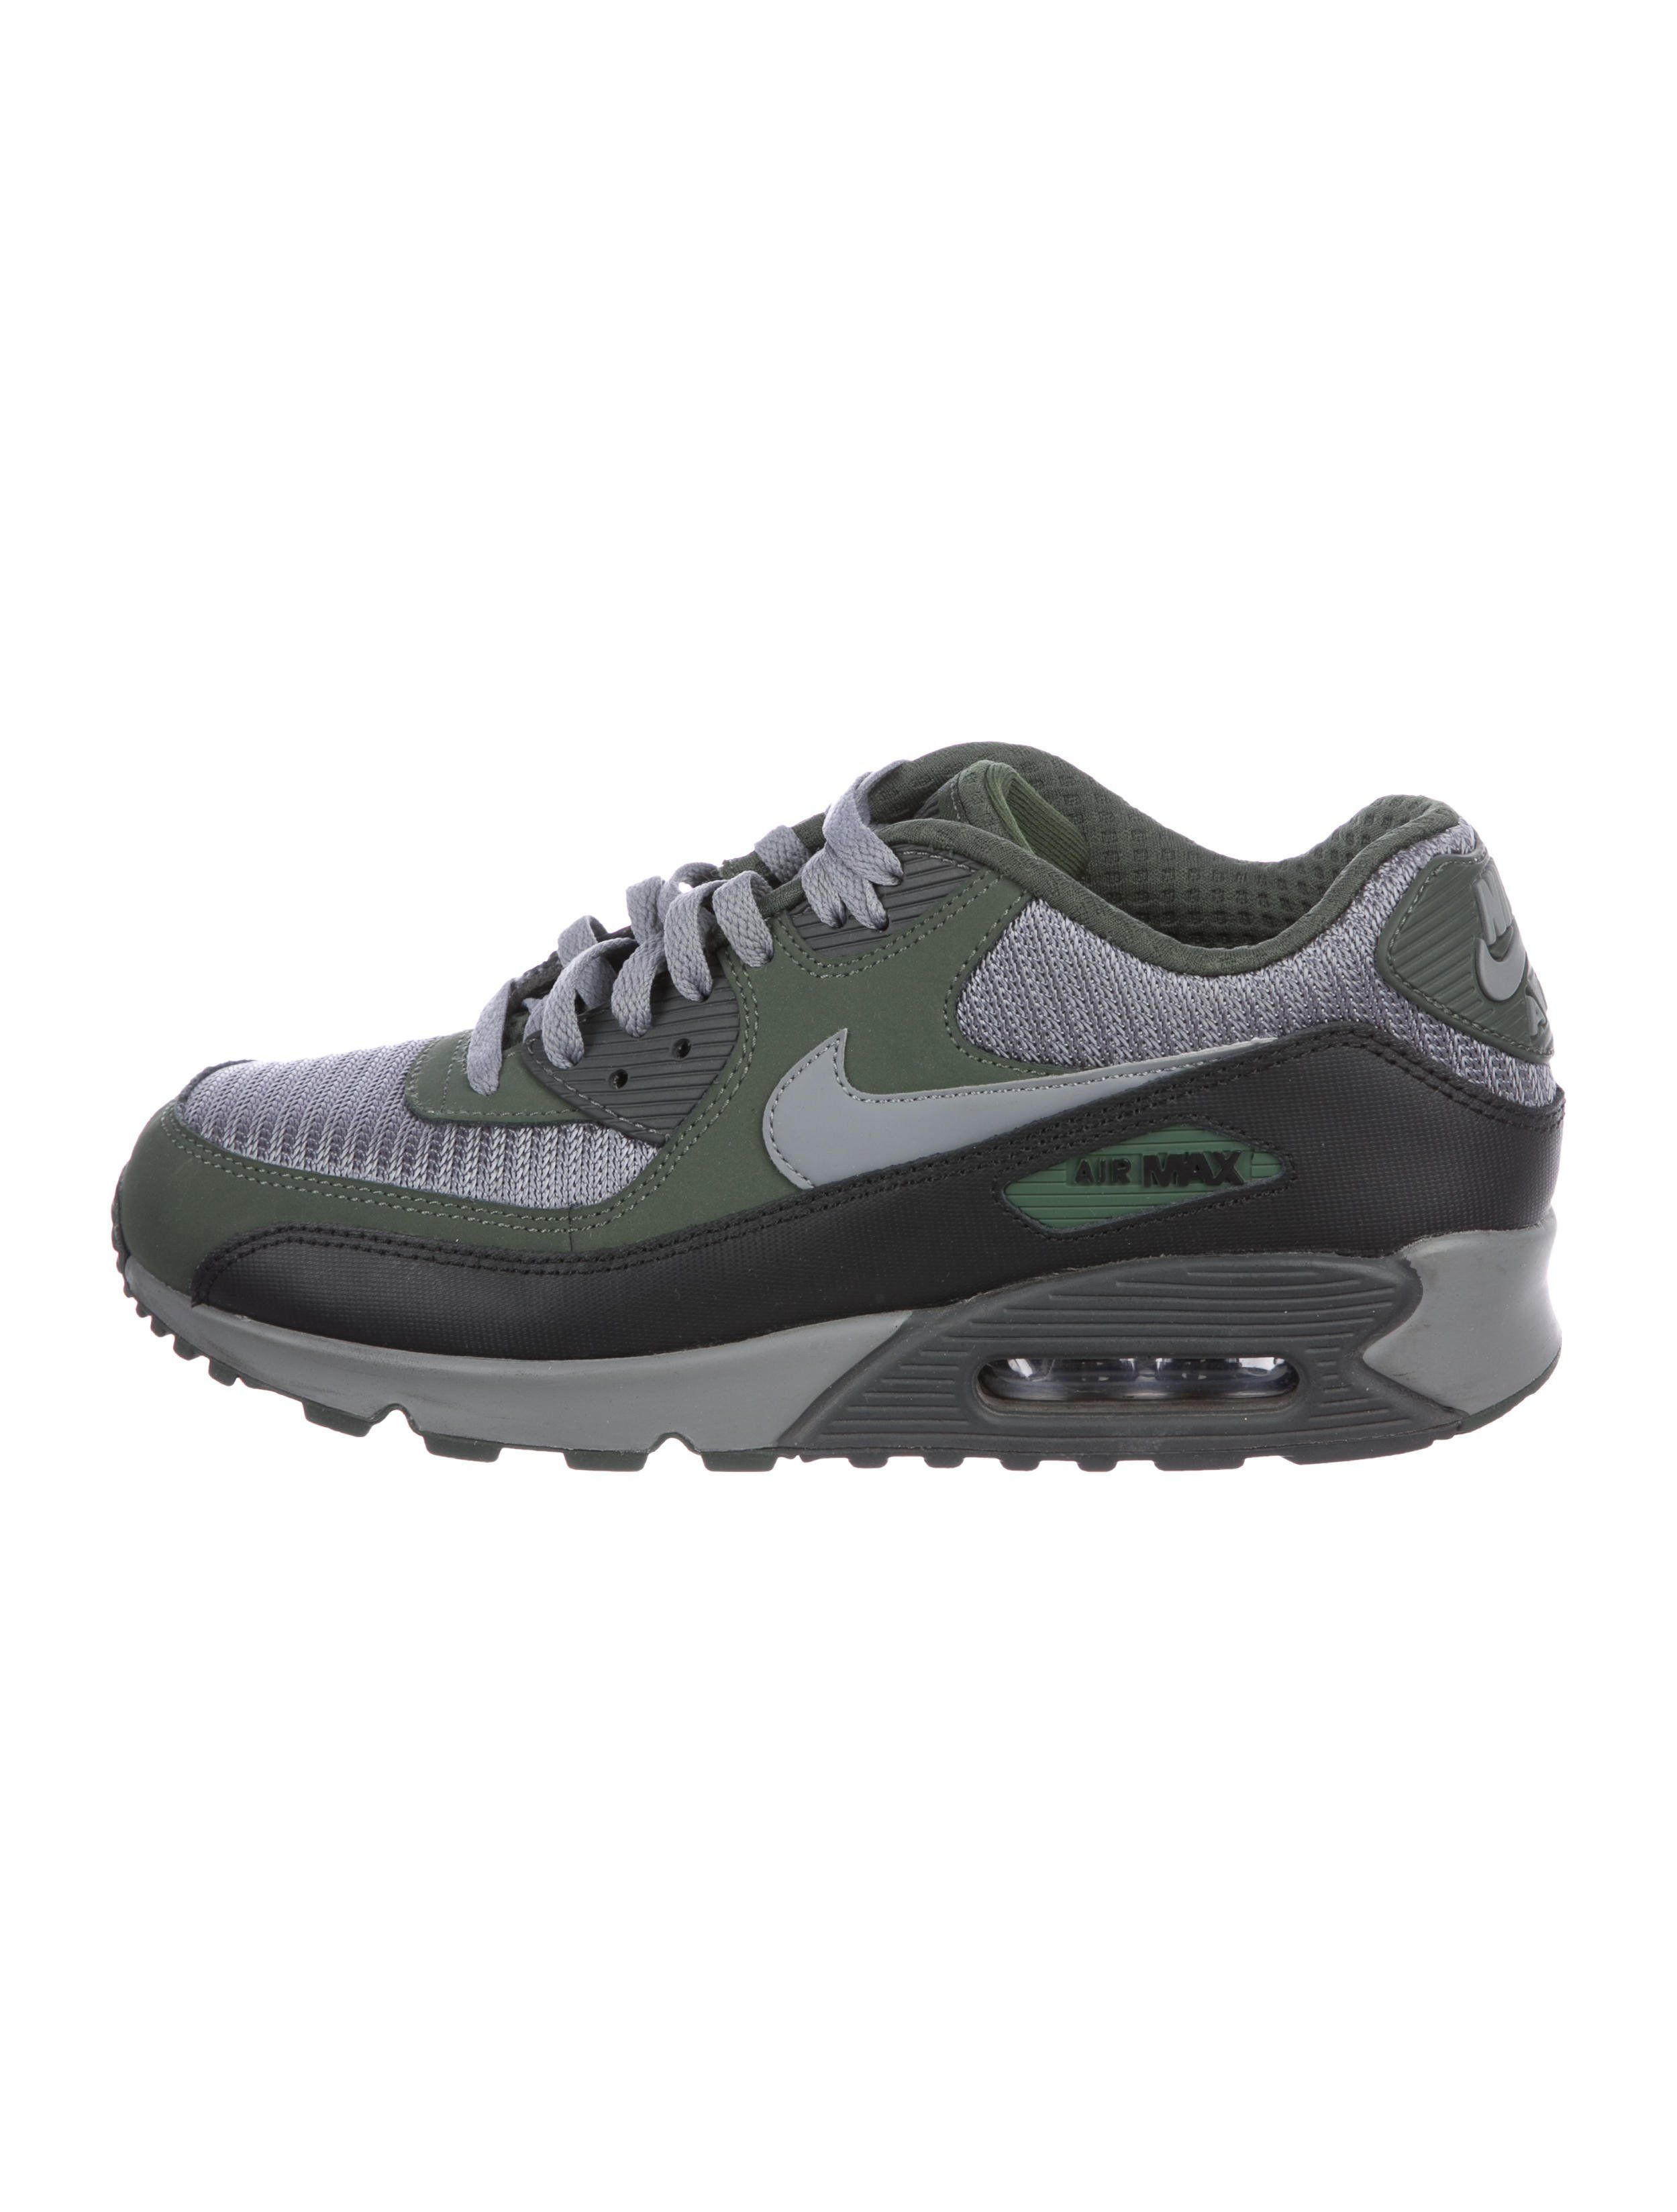 Air Max 90 Essential Sneakers | Sneakers, Nike free shoes